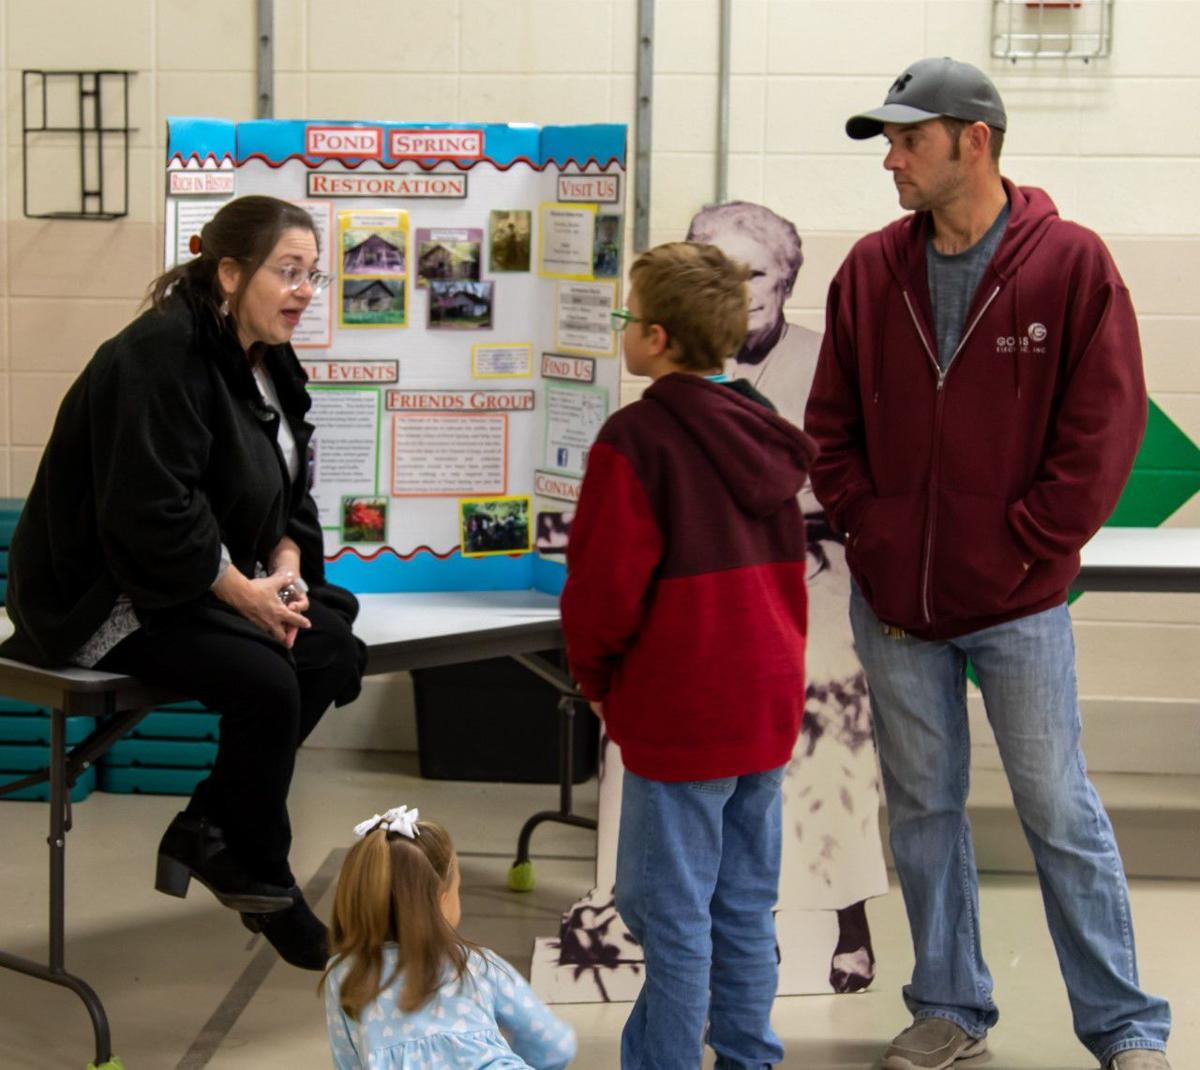 East Lawrence Elementary presents a Night at the Museum, a Bicentennial event